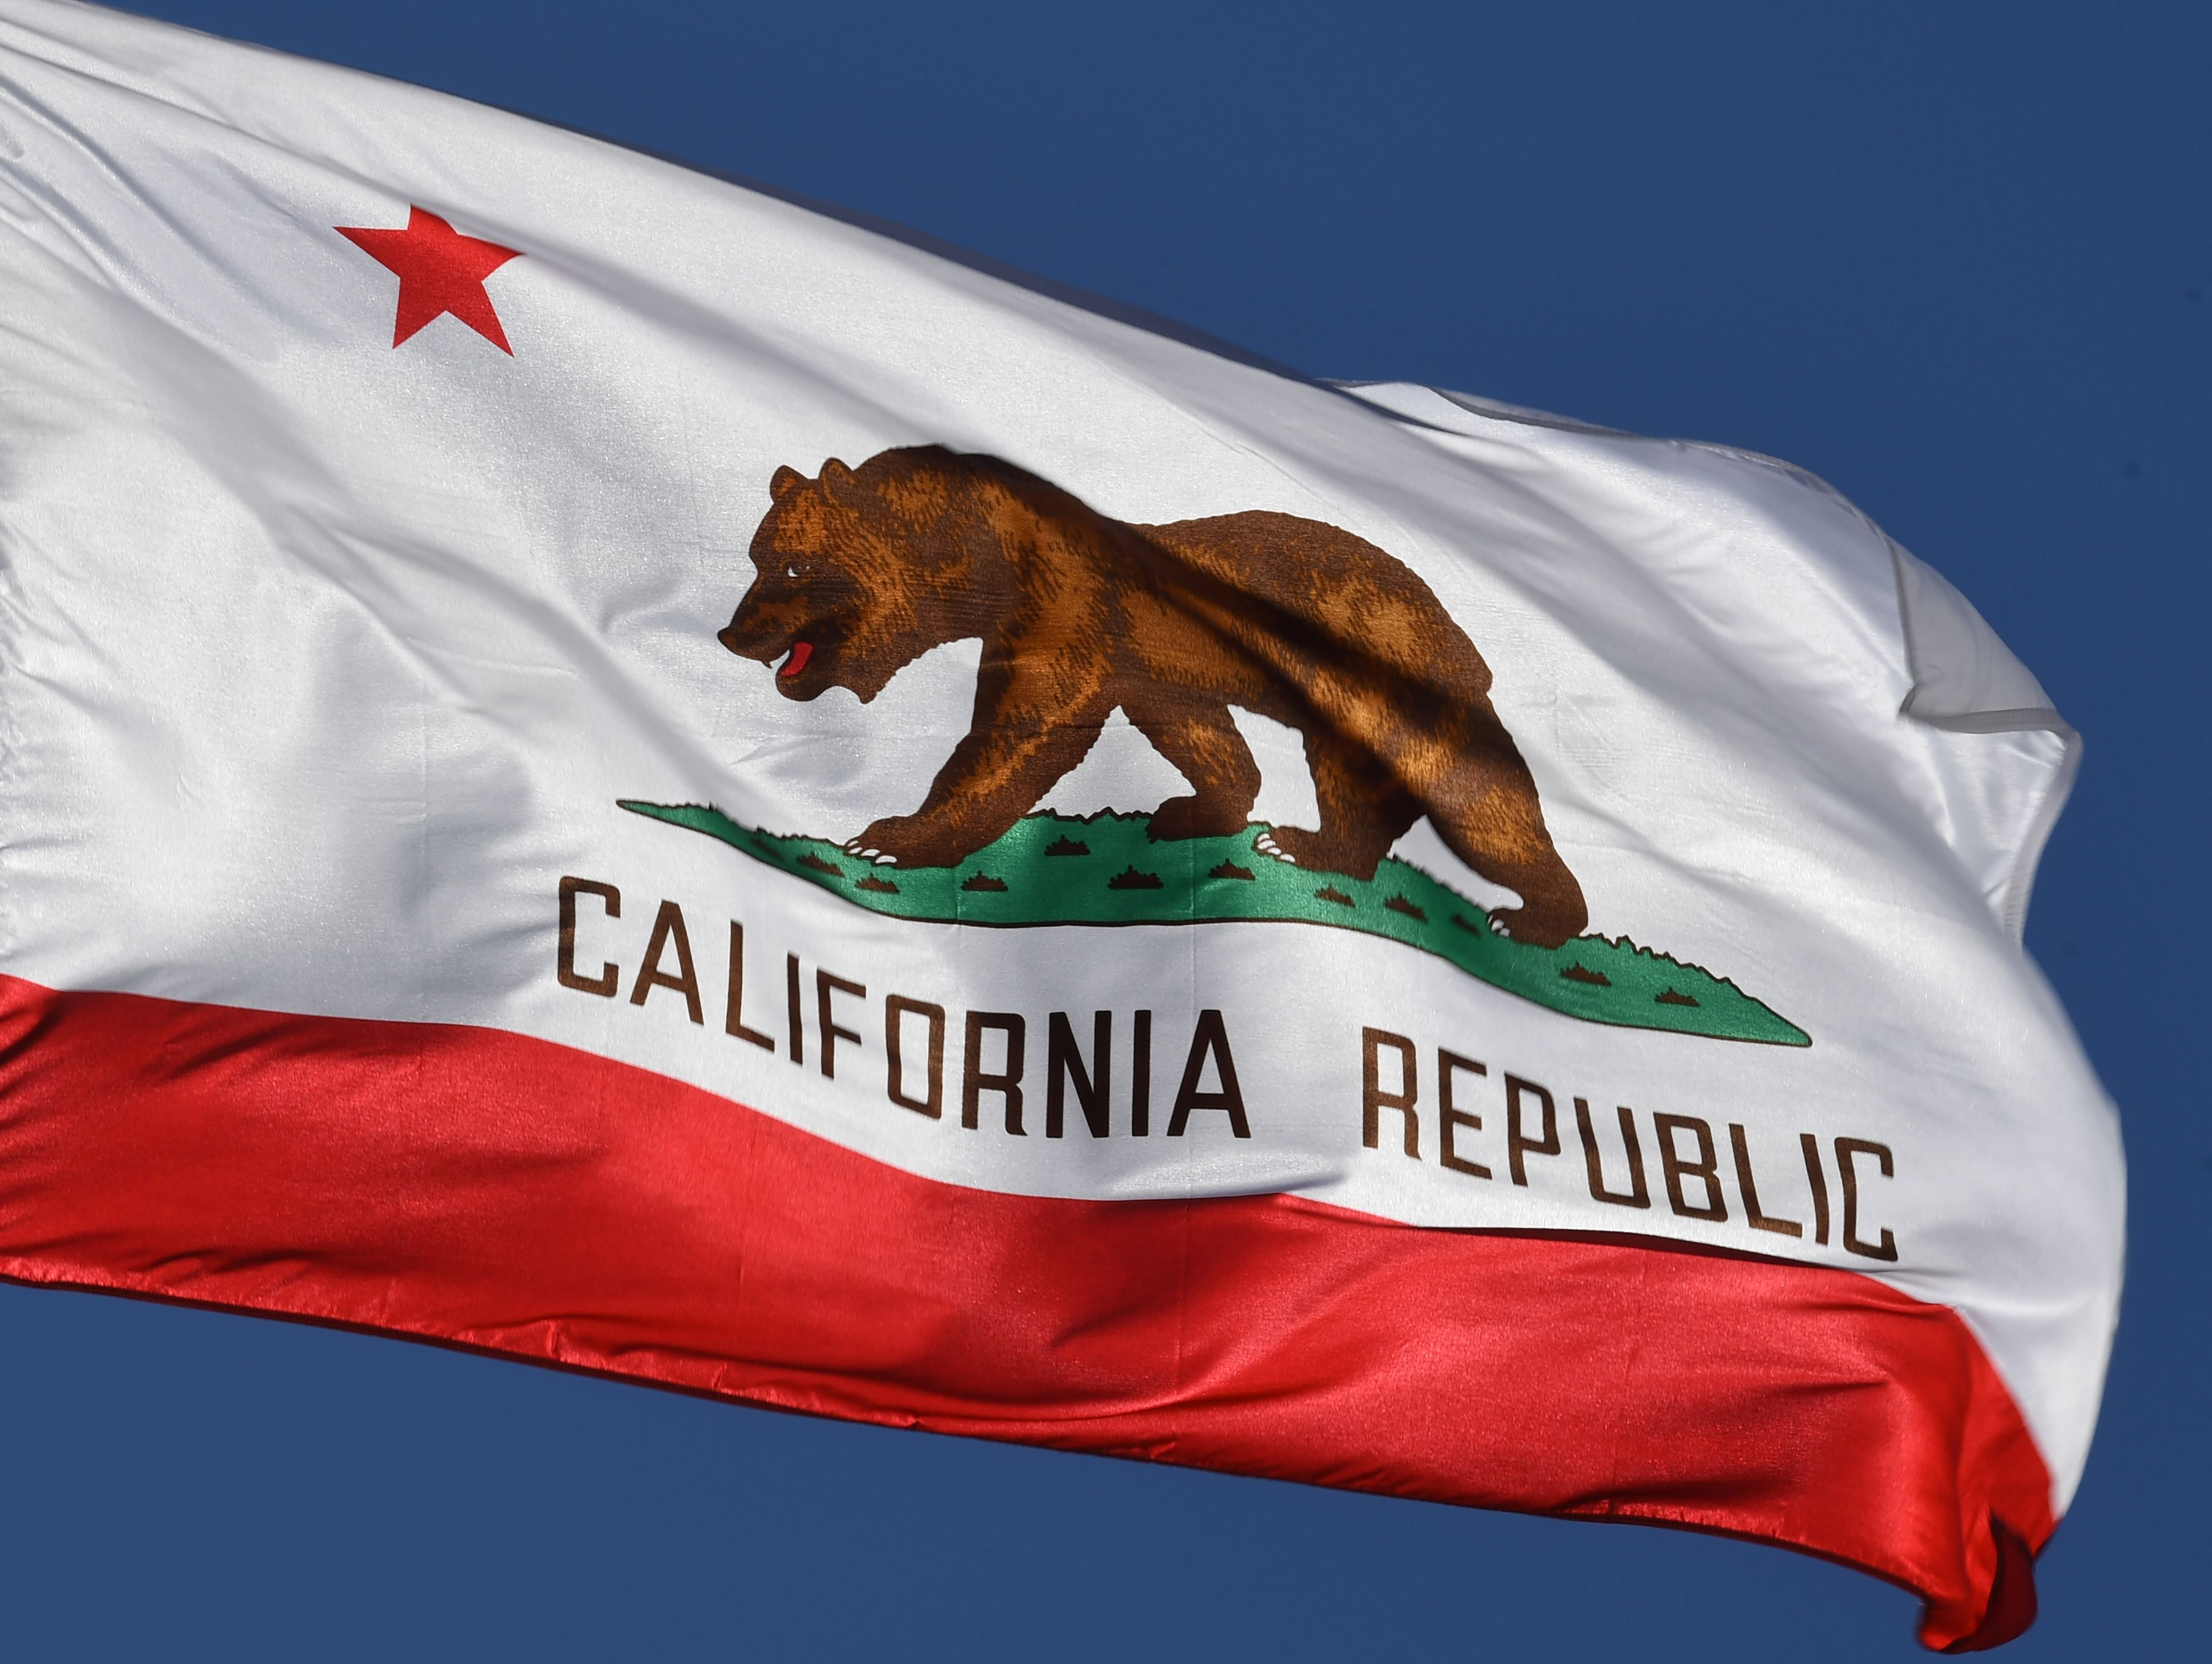 The California State flag flies outside City Hall, in Los Angeles, CA on Jan. 27, 2017.